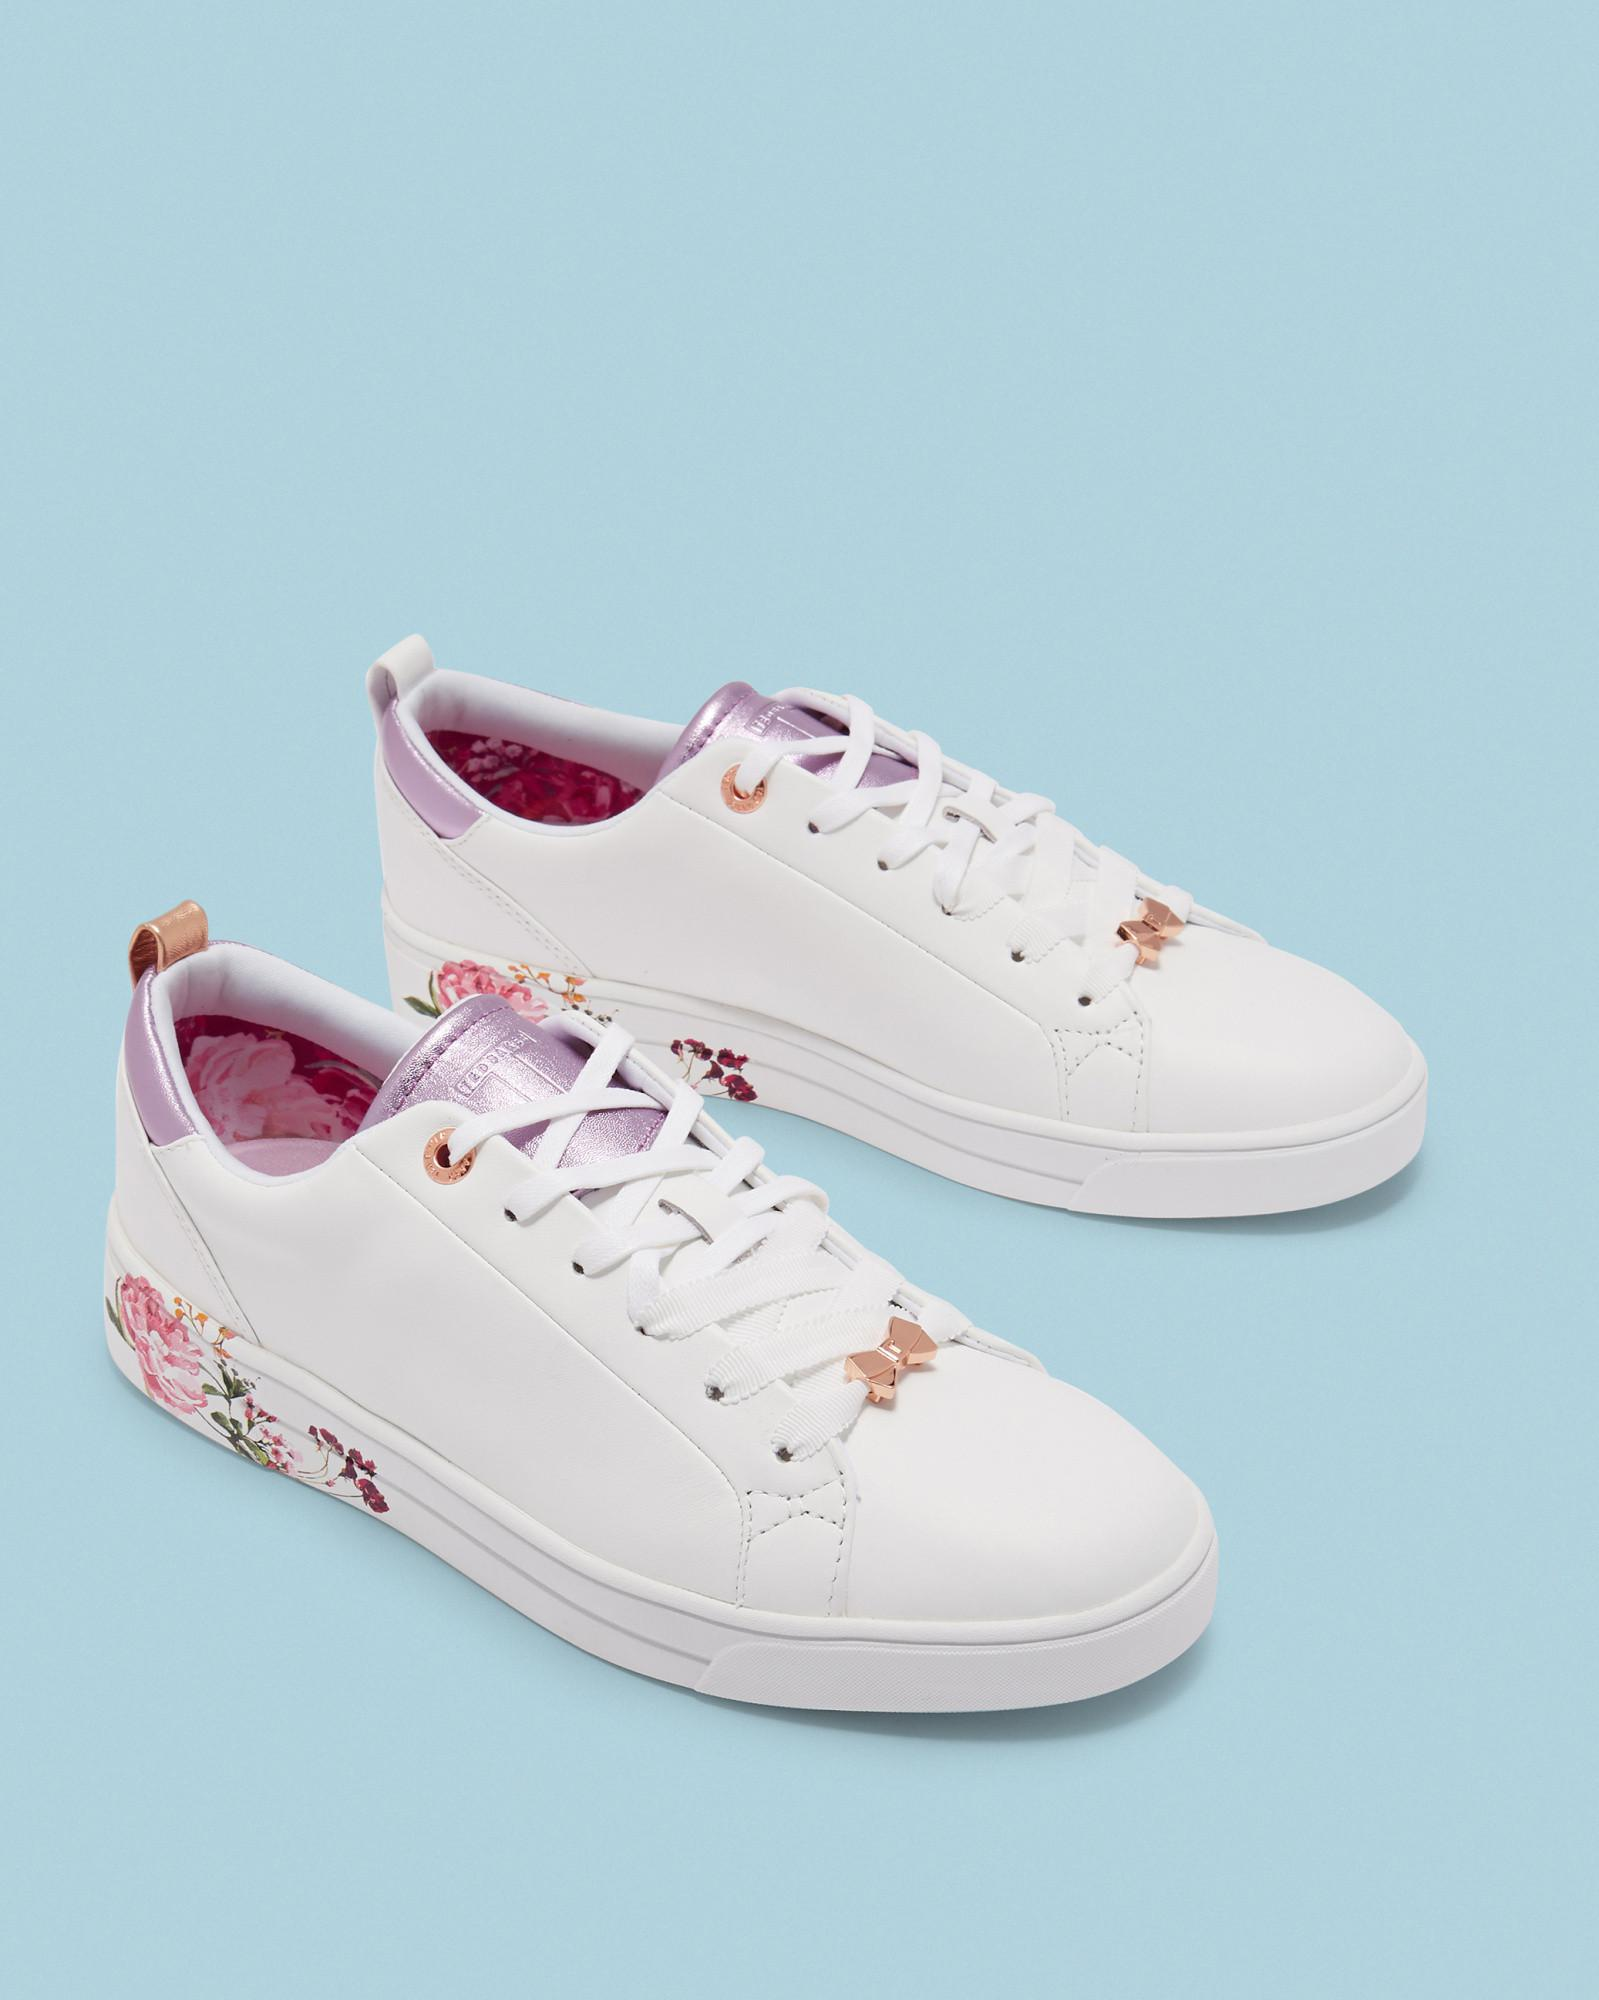 1f25535d4f0208 Lyst - Ted Baker Printed Sole Tennis Trainers in White